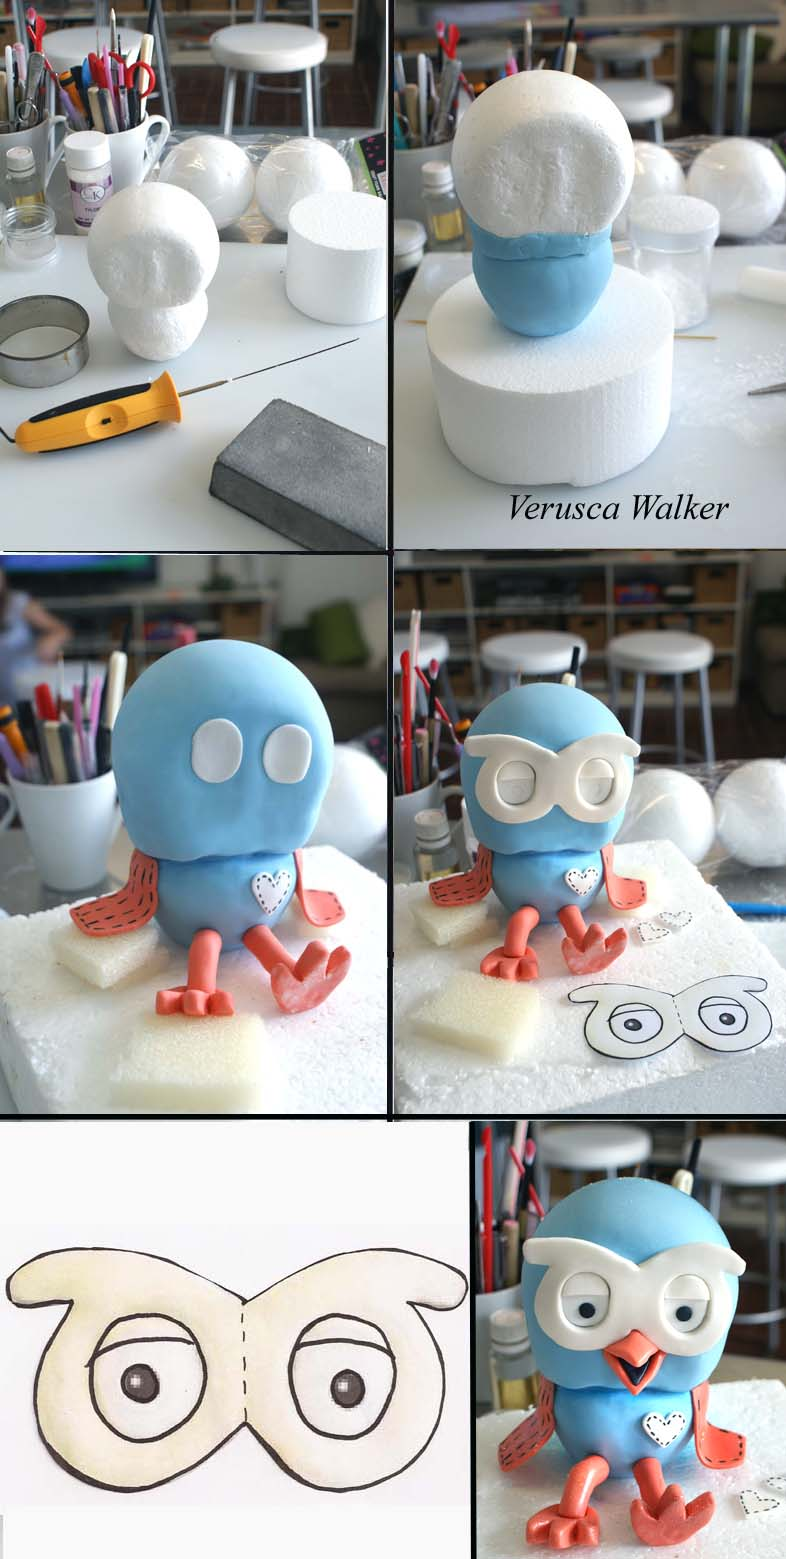 Hoot Figurine by Verusca